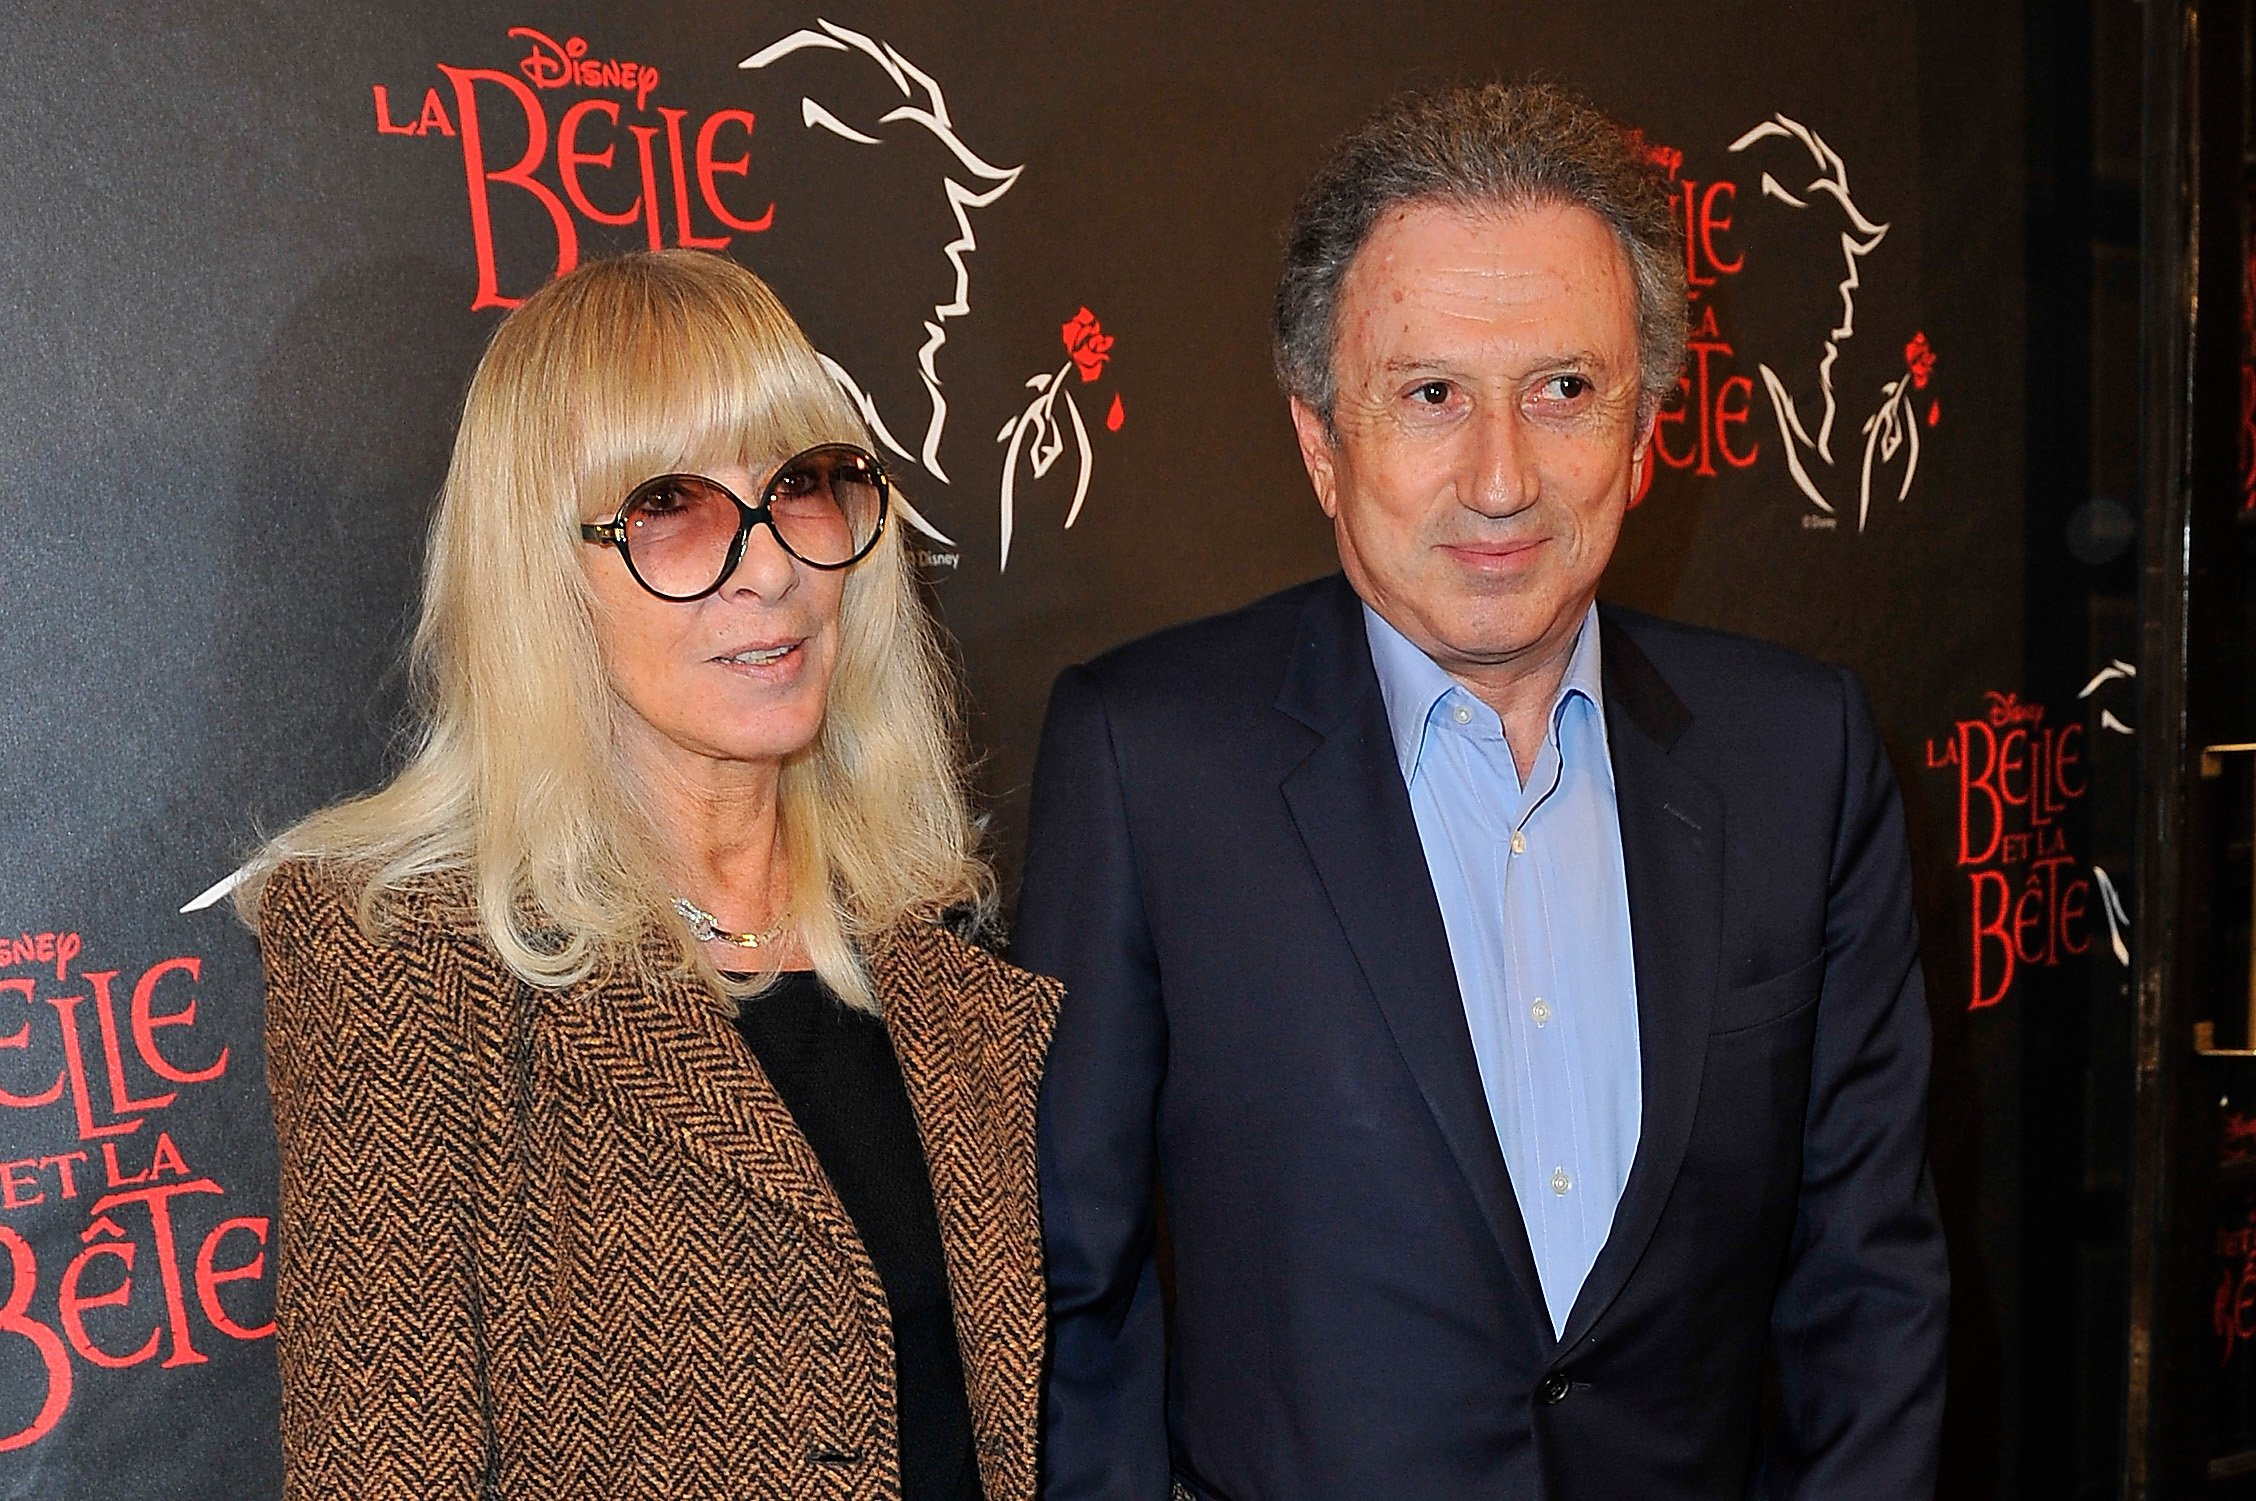 Michel Drucker et Dany Saval | photo : Getty Images